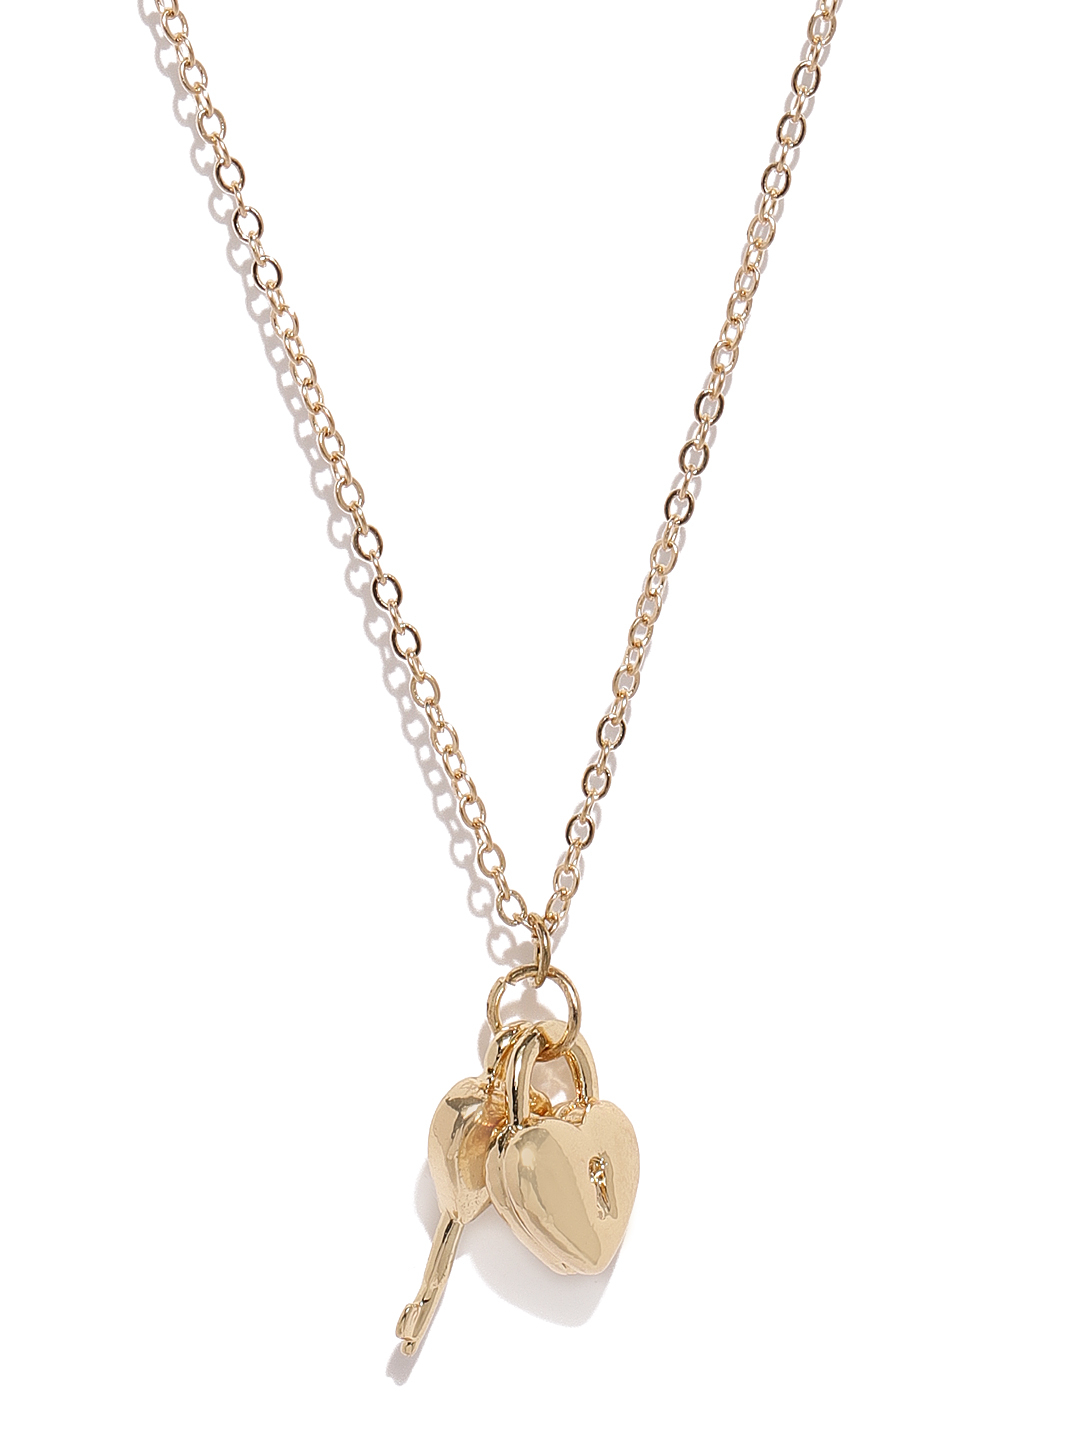 Ayesha Gold Toned Chain With Heart Shaped Lock & Key Pendant In 2020 Heart Shaped Padlock Necklaces (Gallery 25 of 25)